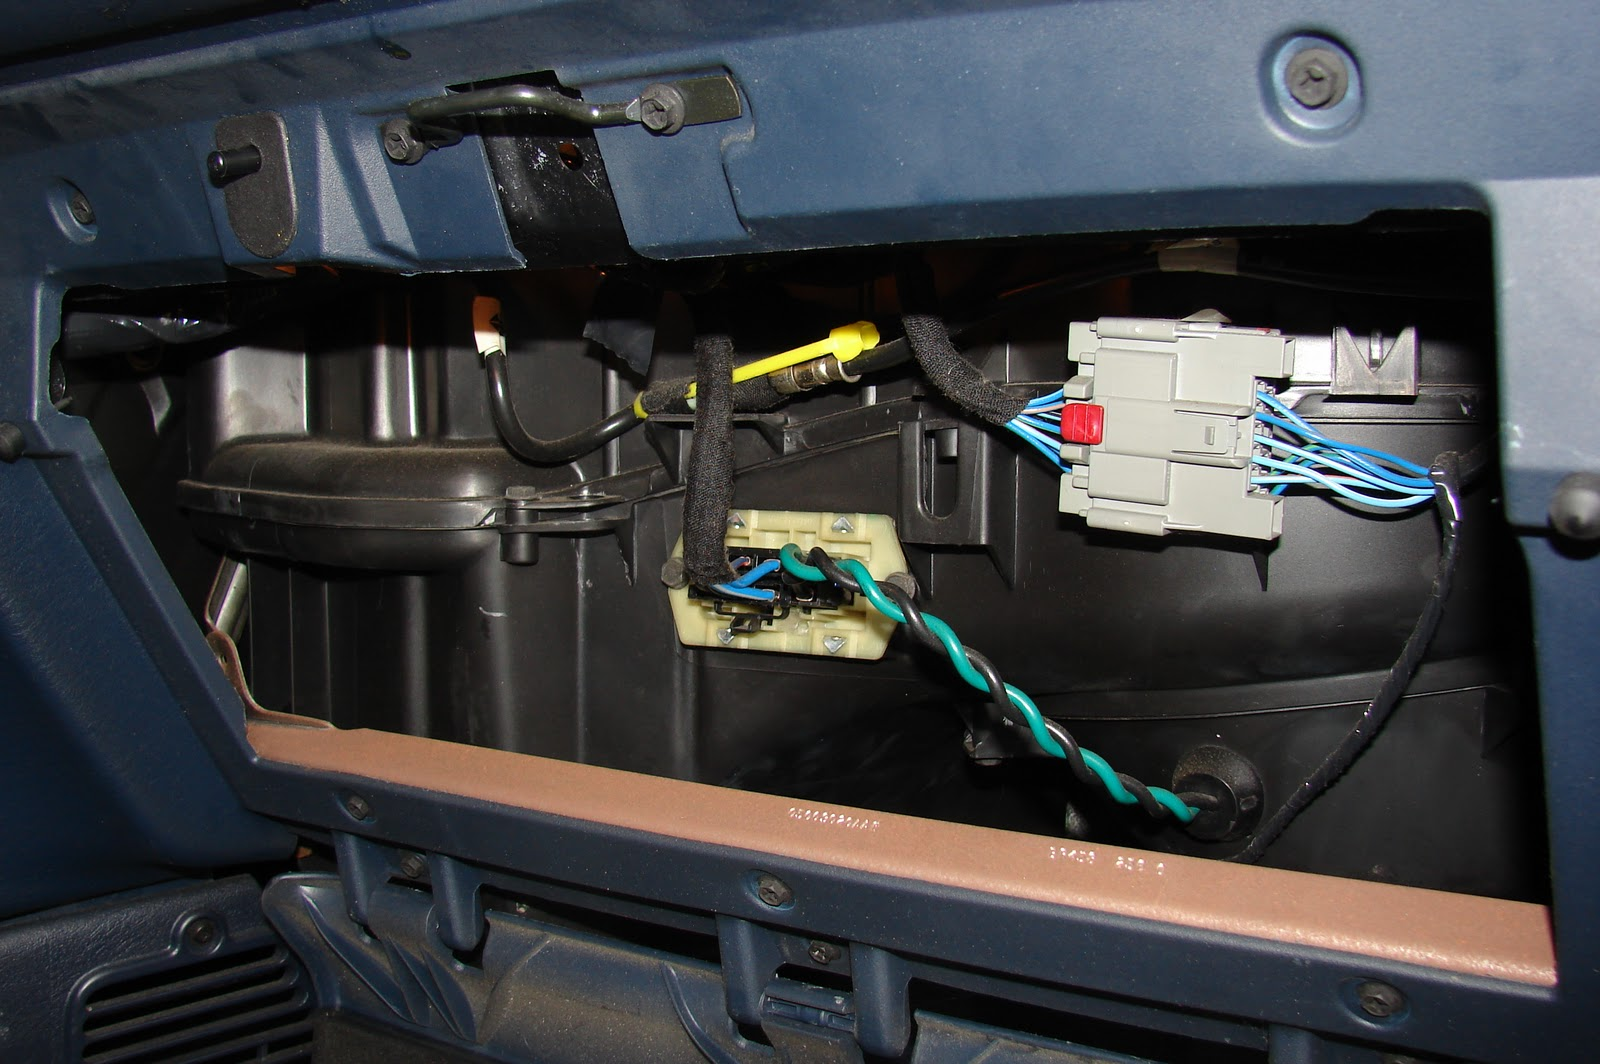 2007 Dodge Caravan Fuse Box Location 36 Wiring Diagram Images 03 Dsc08751 My Commentary And Technical Help Fan Only Works On